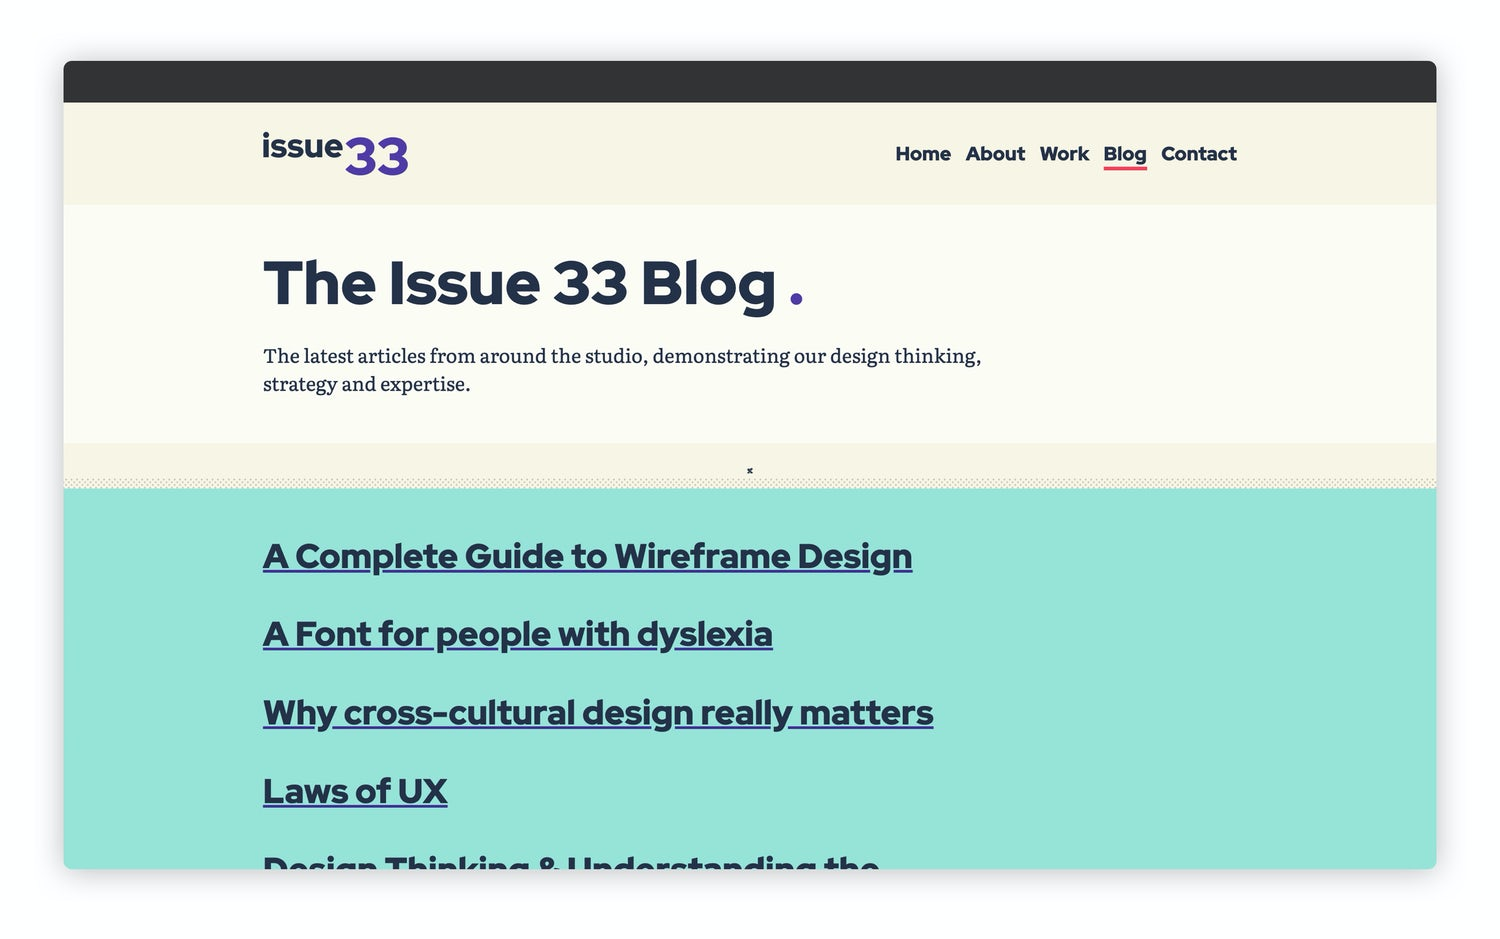 A page header with white background leads a list of links with large text on a teal background